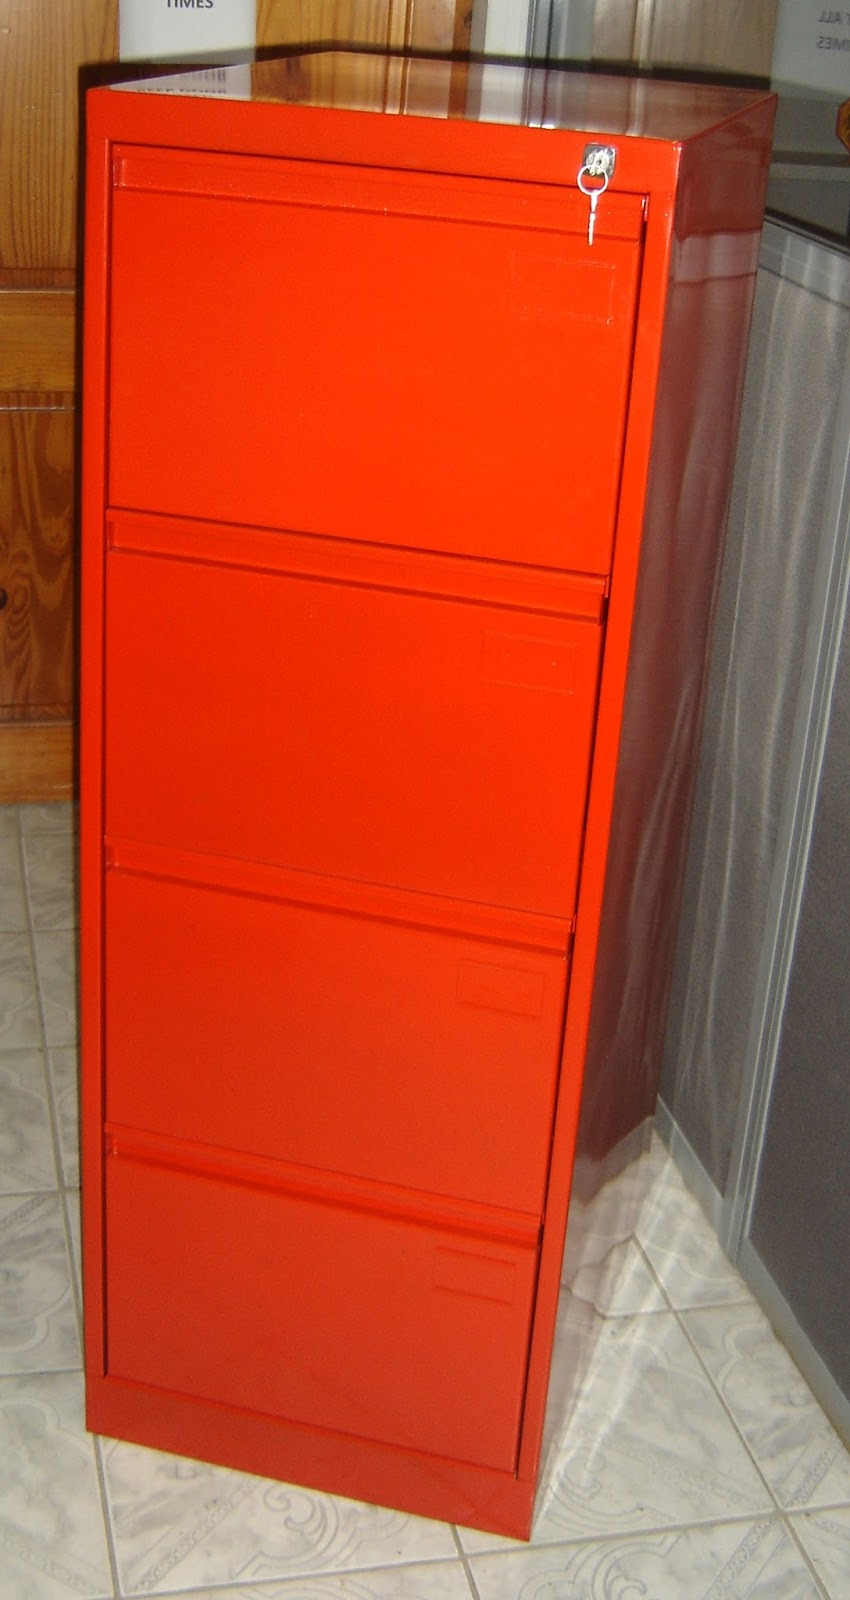 Customized Four (4) Drawer Vertical Filing Cabinet